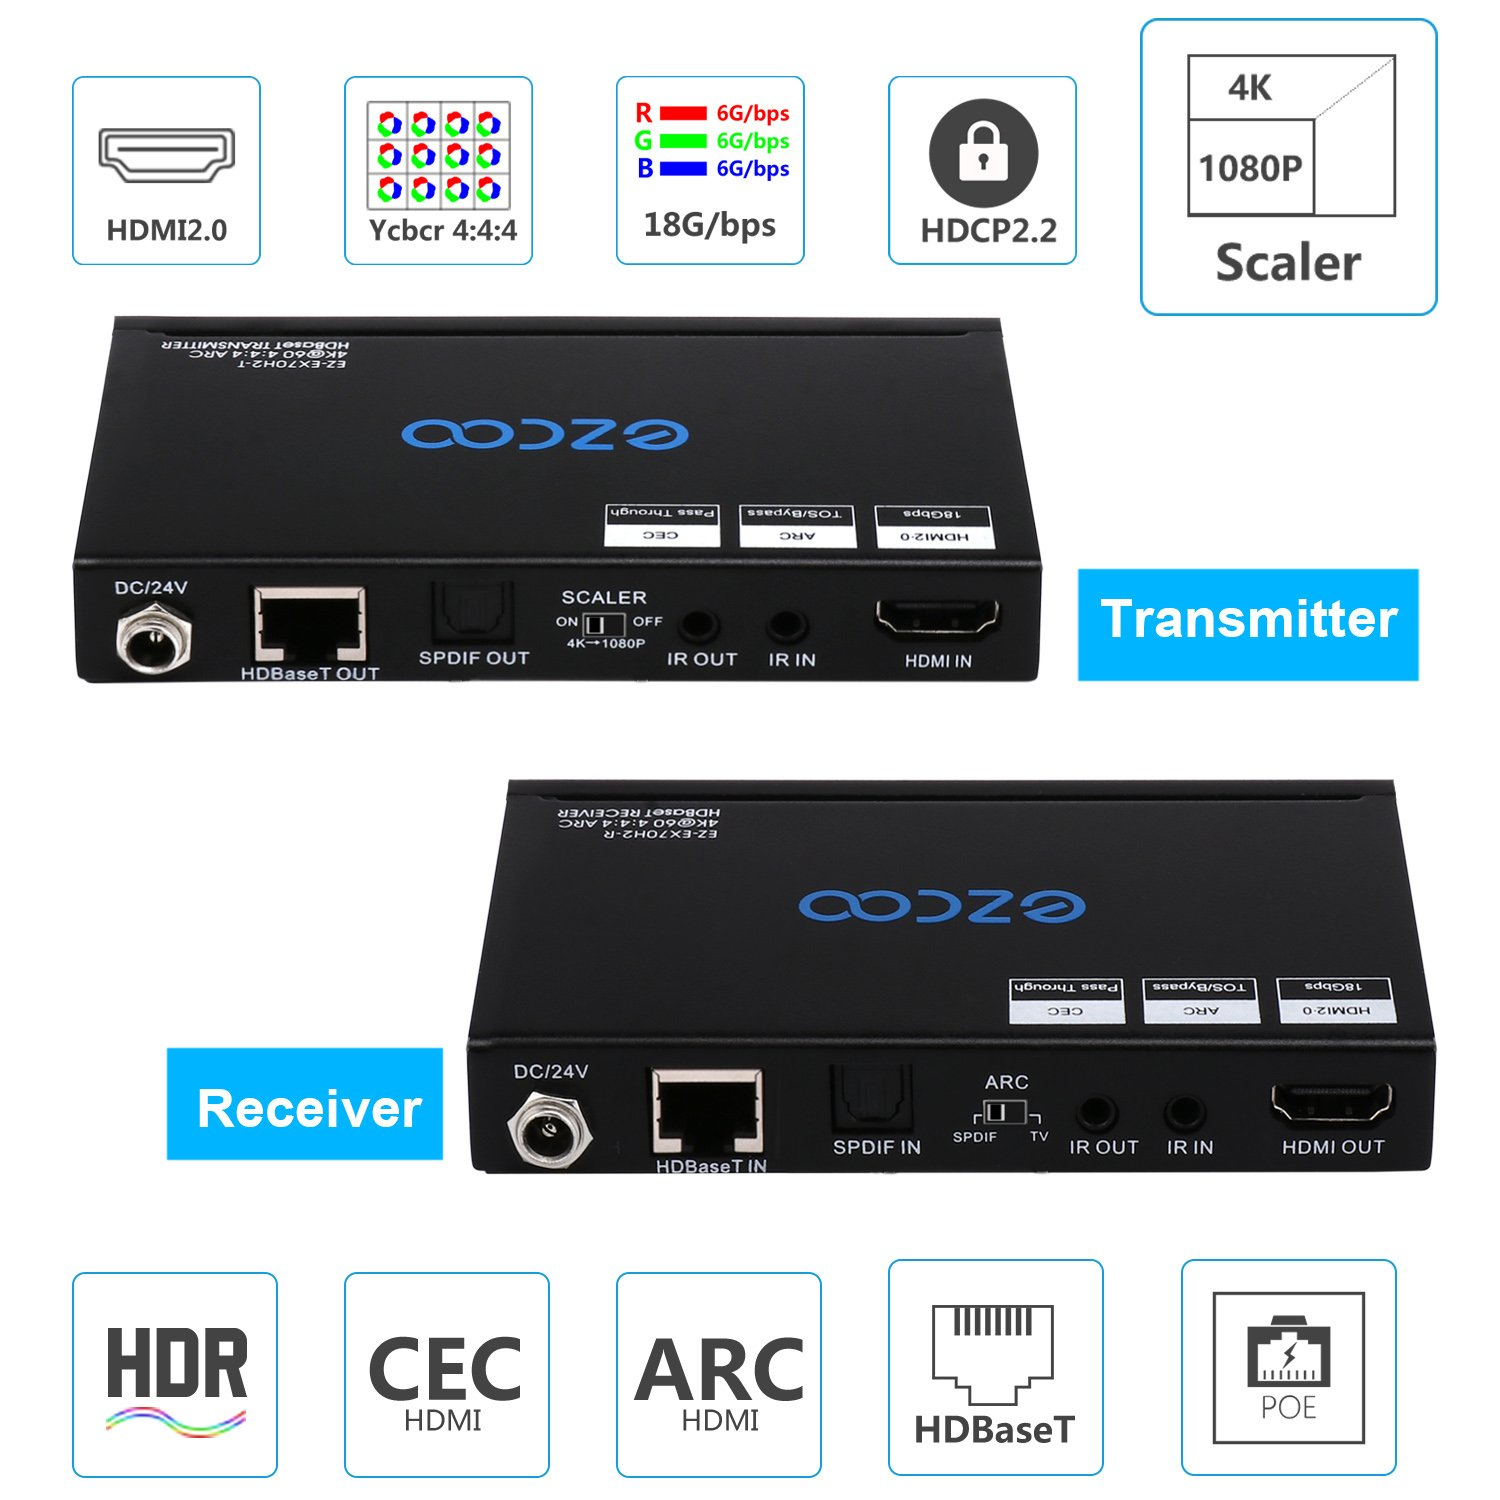 EZCOO 4K HDMI 2.0/HDBaseT Extender ARC HDR Scaler, Uncompressed 4K 60Hz 4:4:4 18Gbps HDCP 2.2 SPDIF, 1080P Scaler Out, 230ft 1080P, 130ft 4K over signal Cat5e/6/7, Bi-directional PoE+IR, CEC, DTS:X